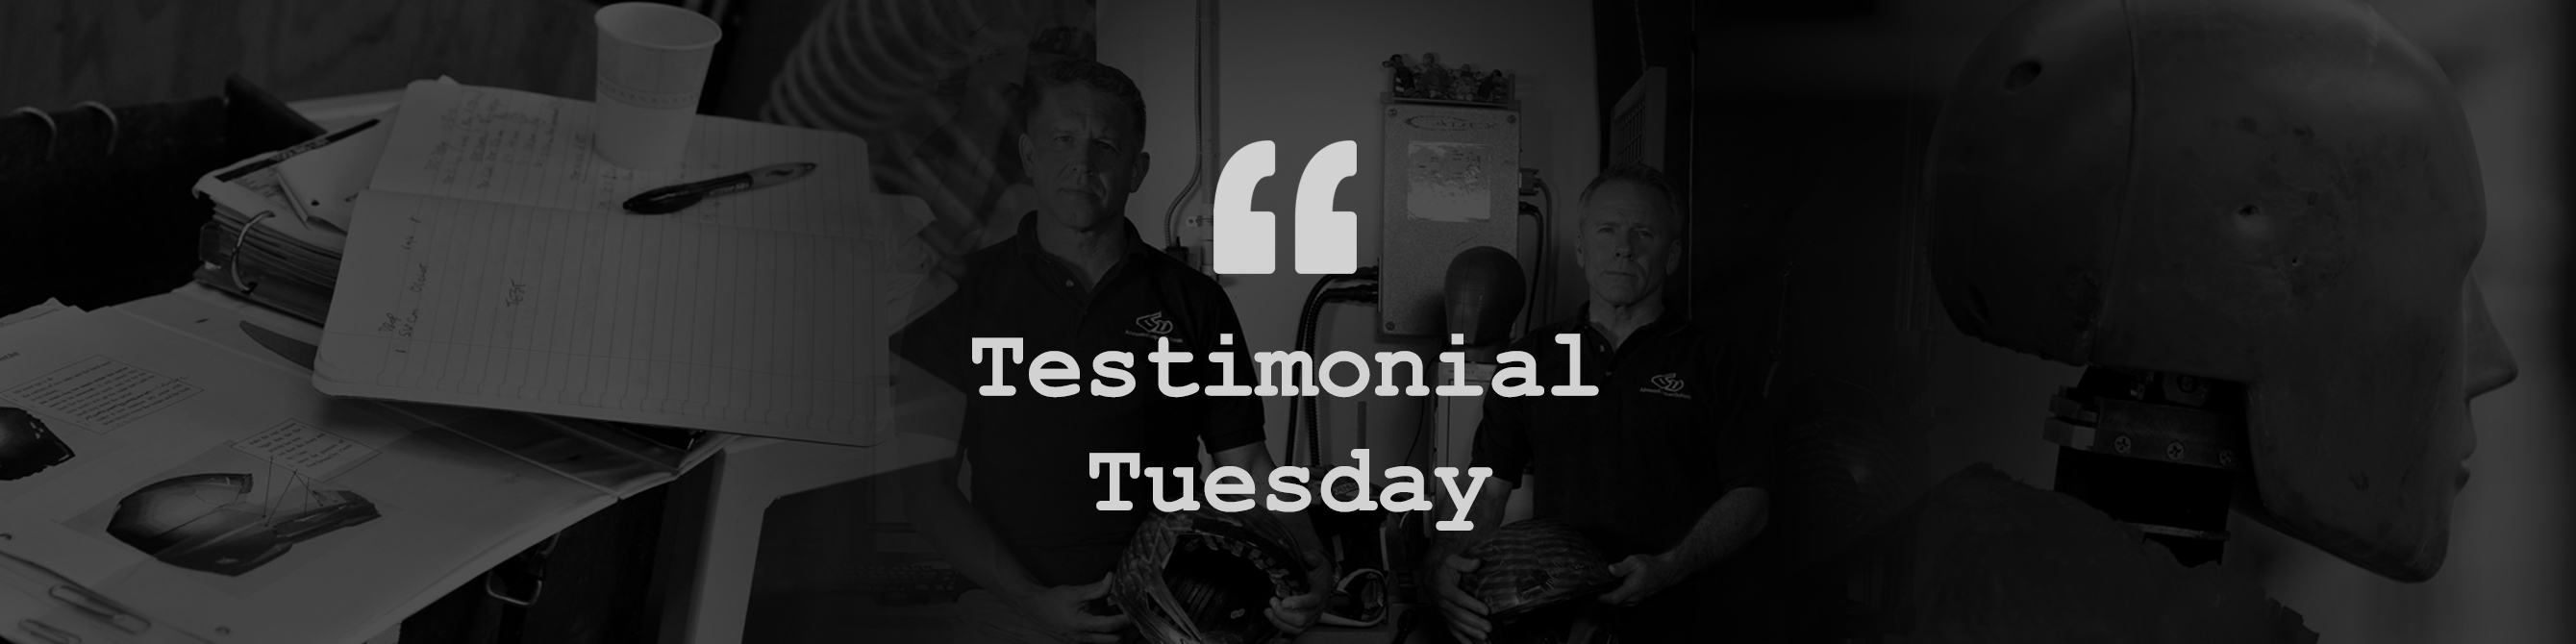 Testimonial Tuesday Header